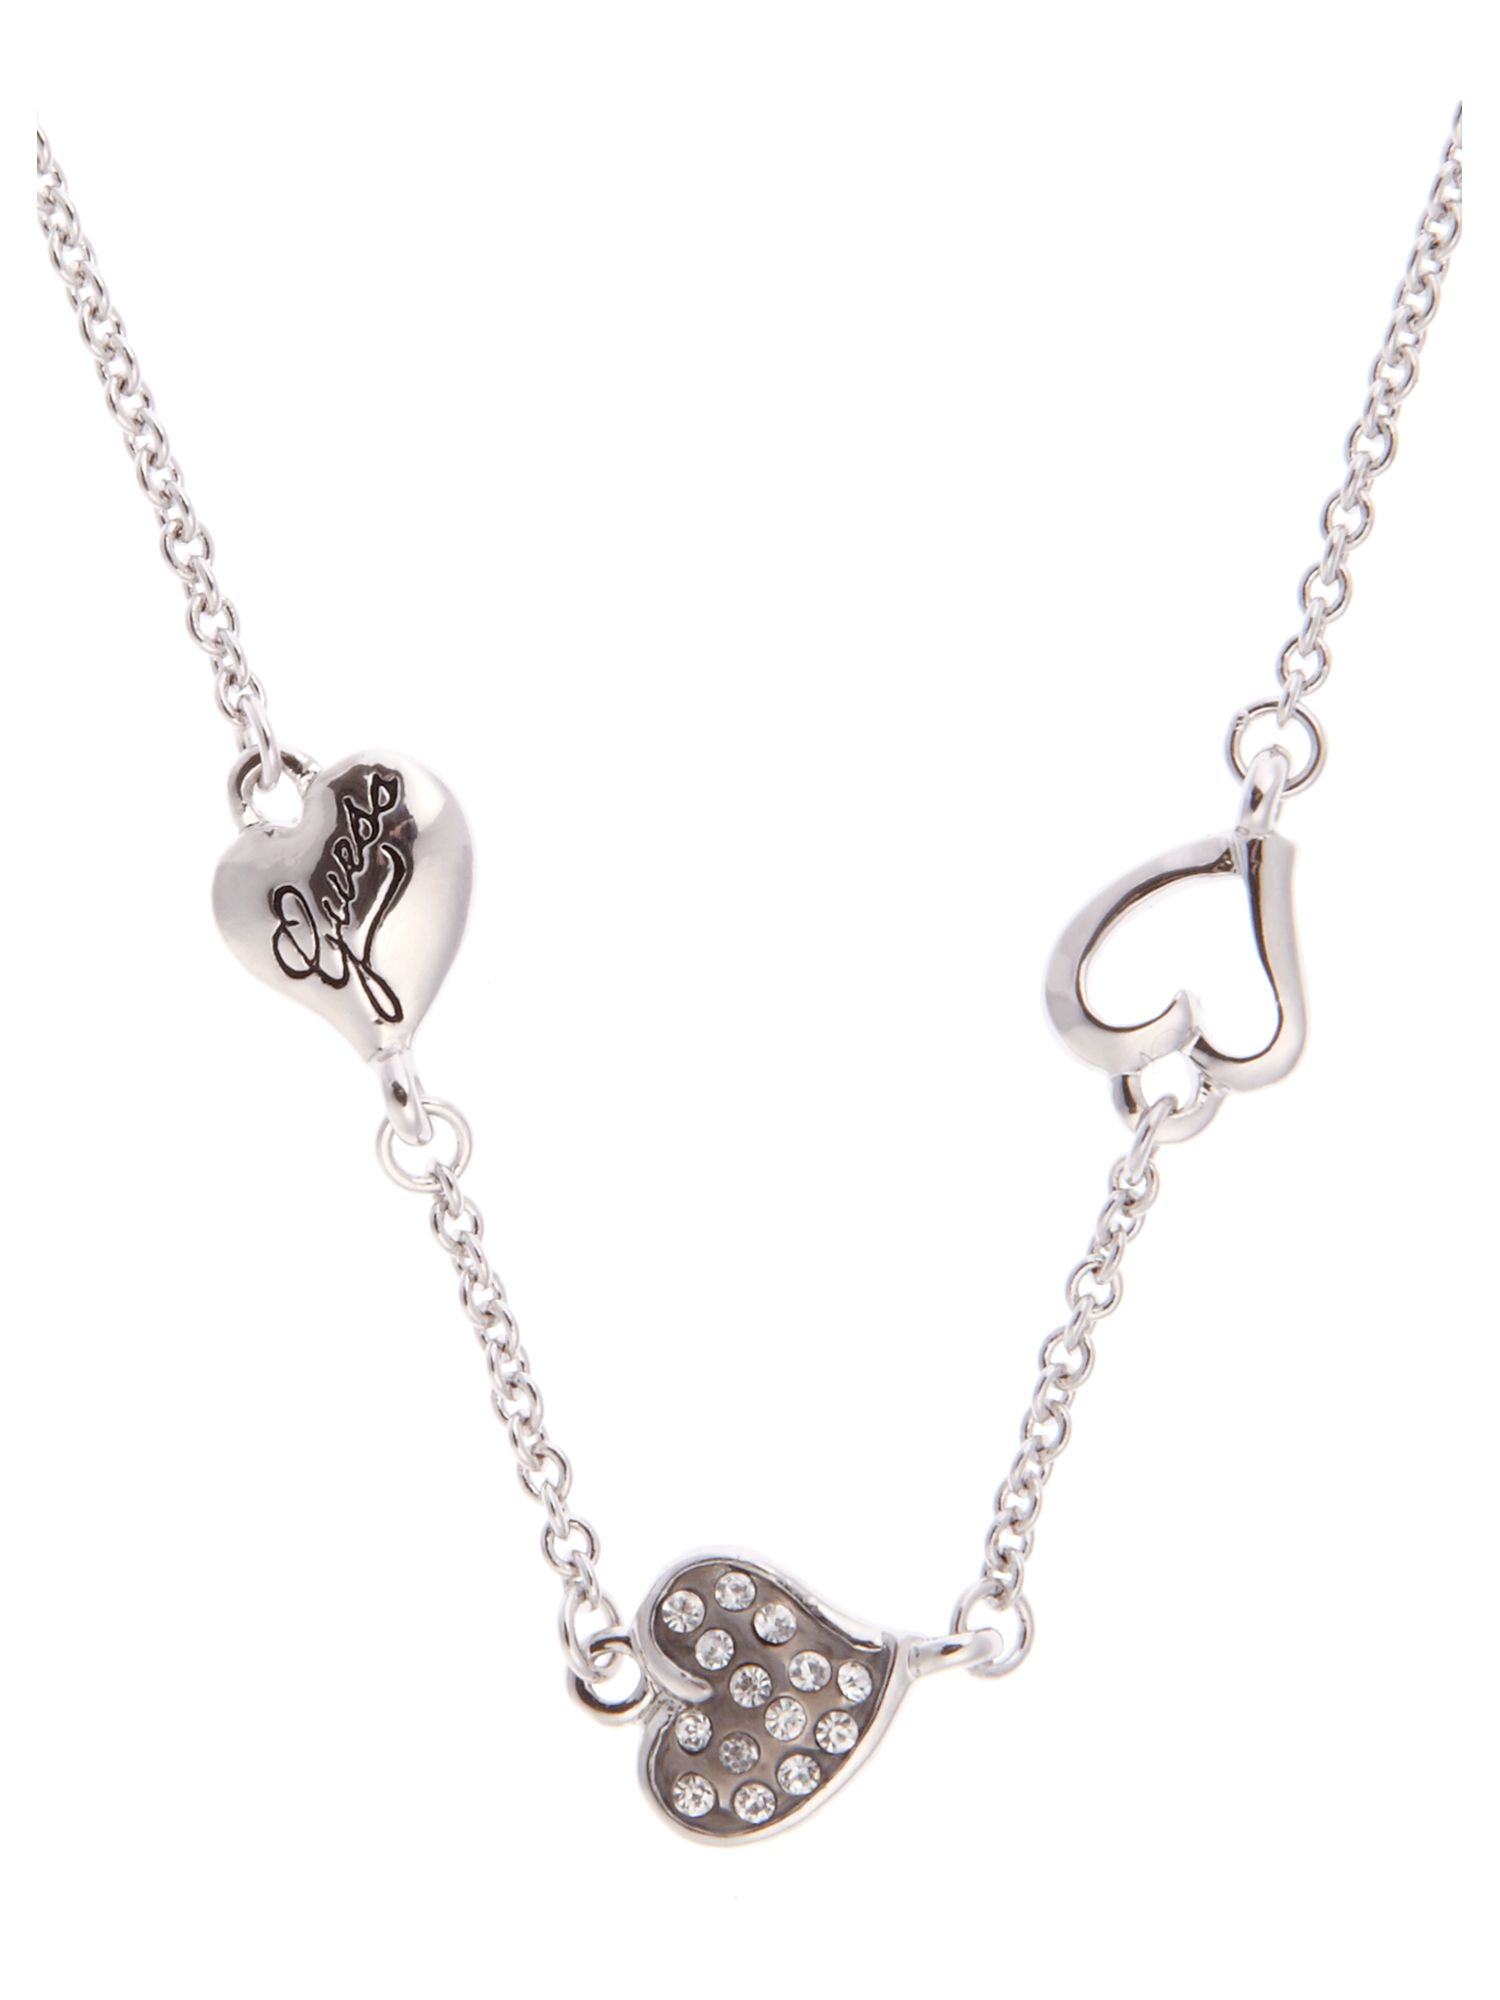 Guess 3 Heart Necklace